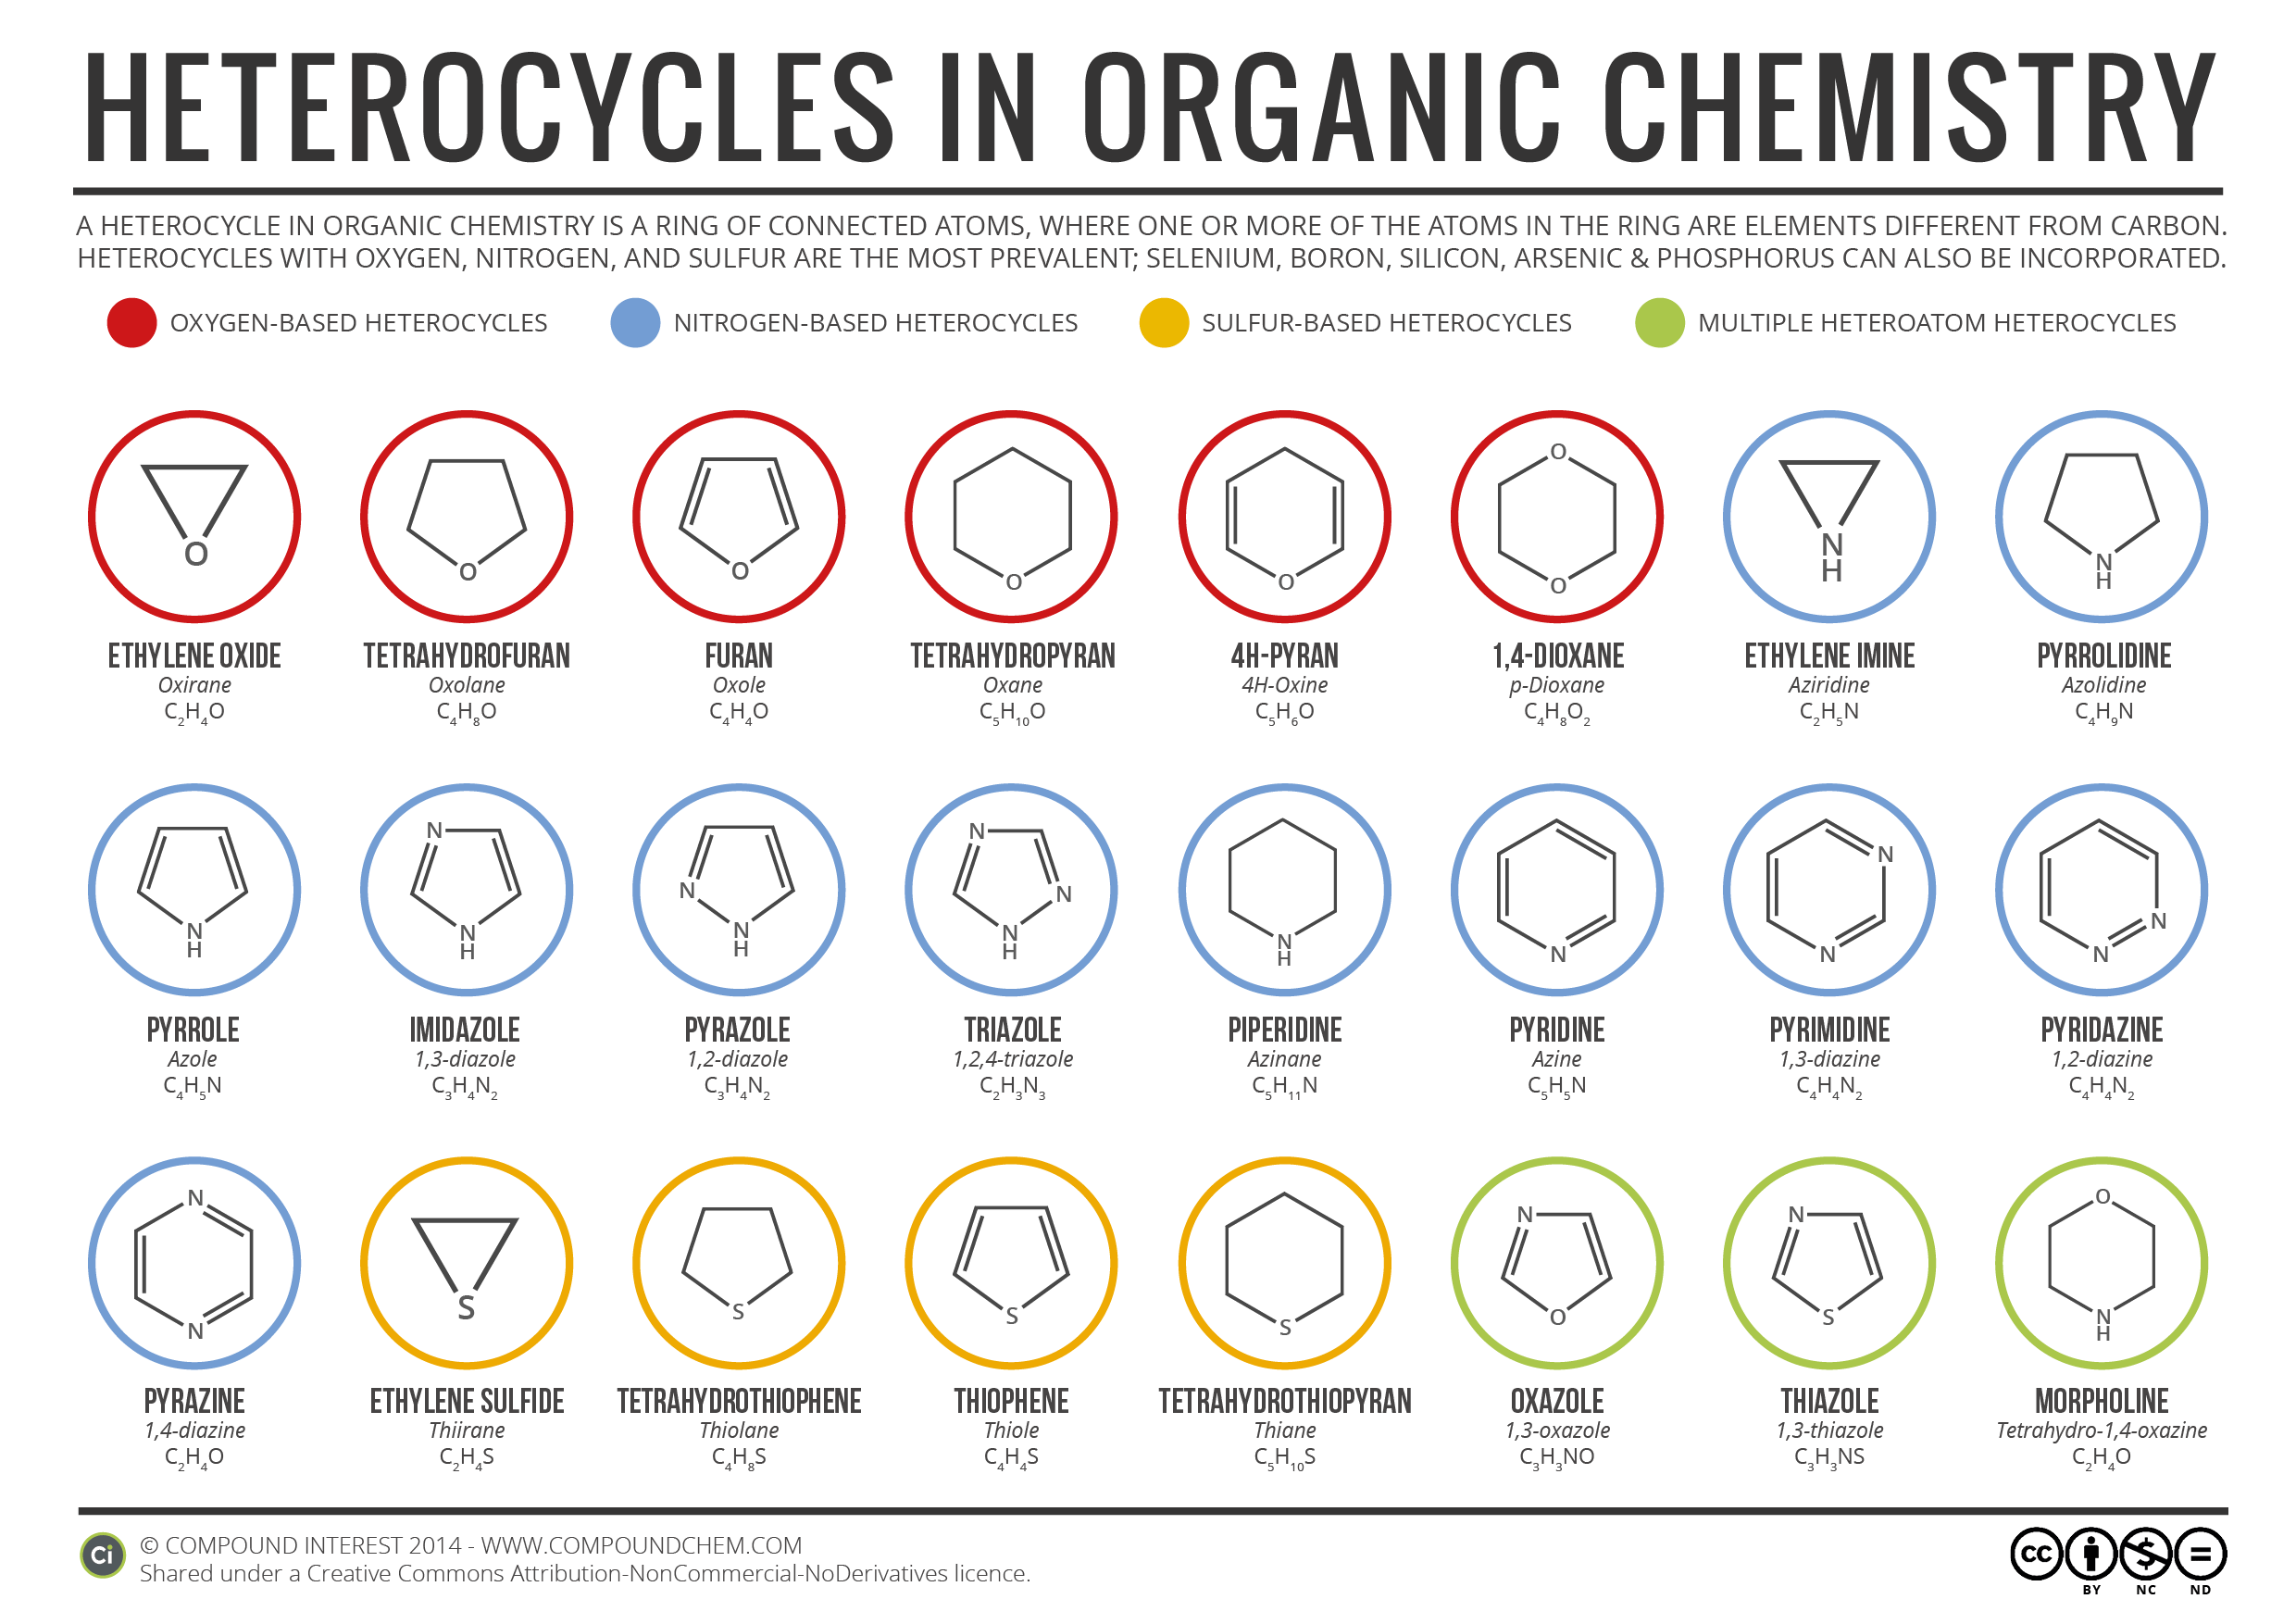 Simple Heterocycles In Organic Chemistry Infographic